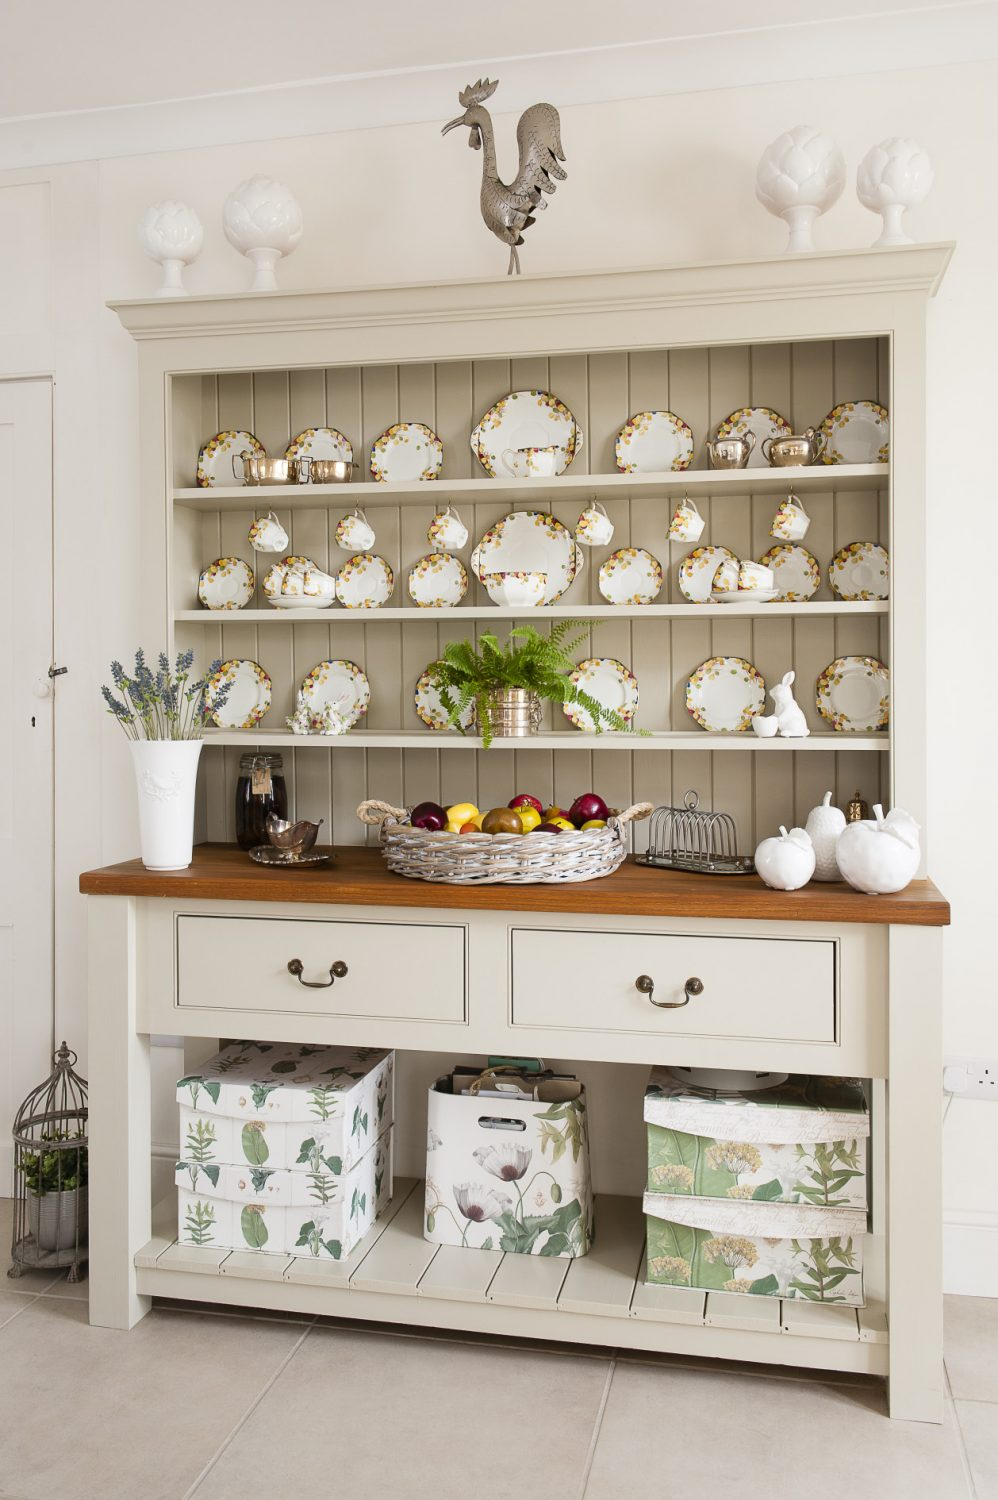 A painted Welsh dresser displays a full set of early 20th century bone china that belonged to Murielle's parents